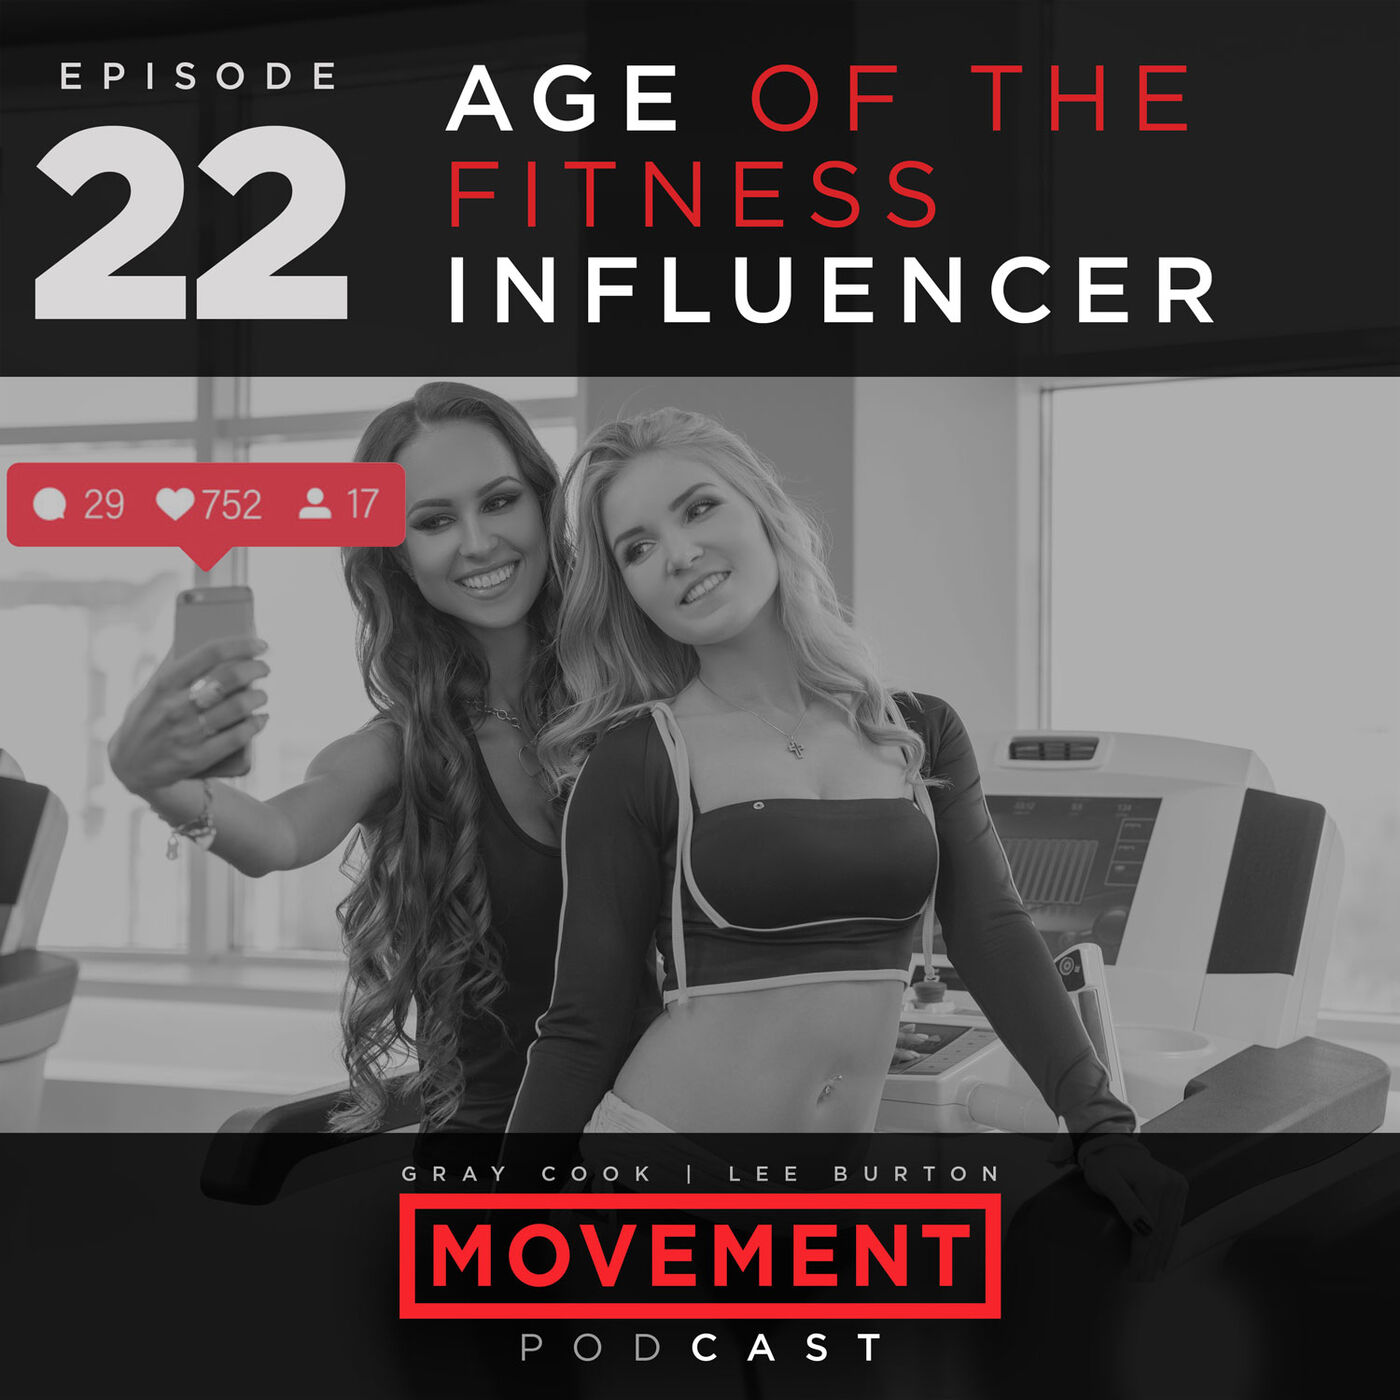 Age of the Fitness Influencer